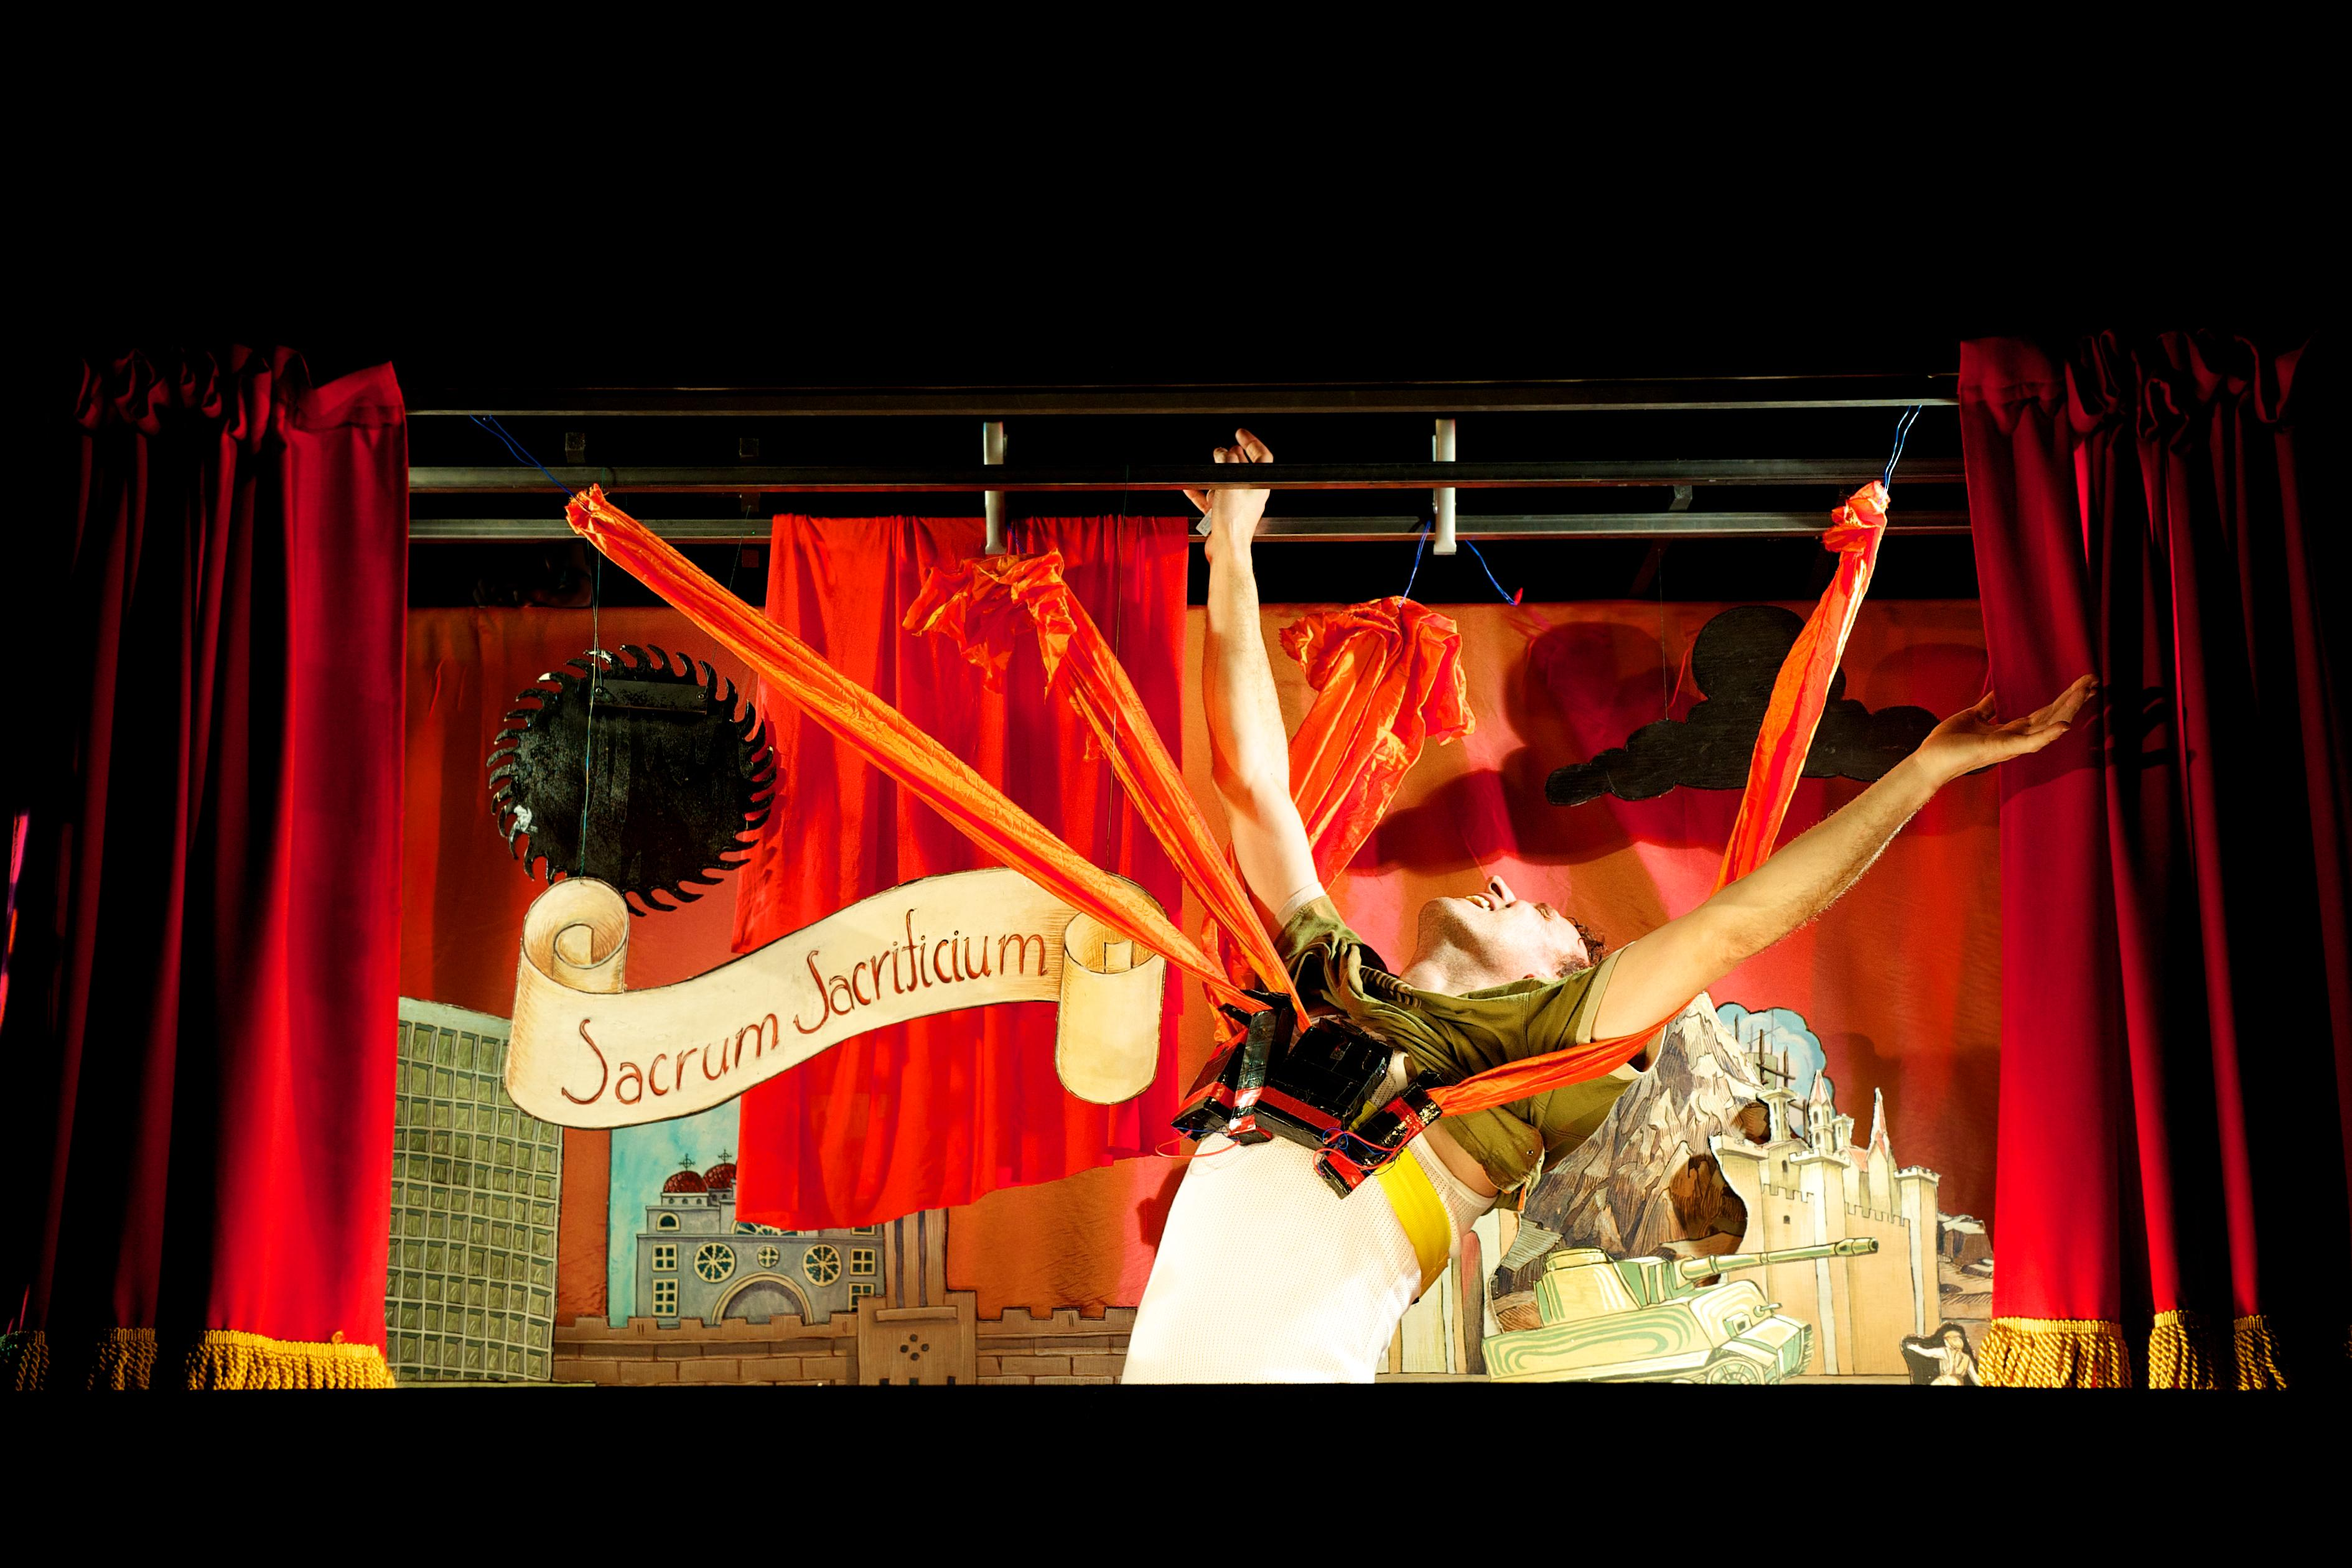 """A man caught in red fabric flares his hands upward in front of a miniature stage set that is made of red curtains, painted paper, and a paper banner that reads: """"Sacrum Sacridicium."""""""